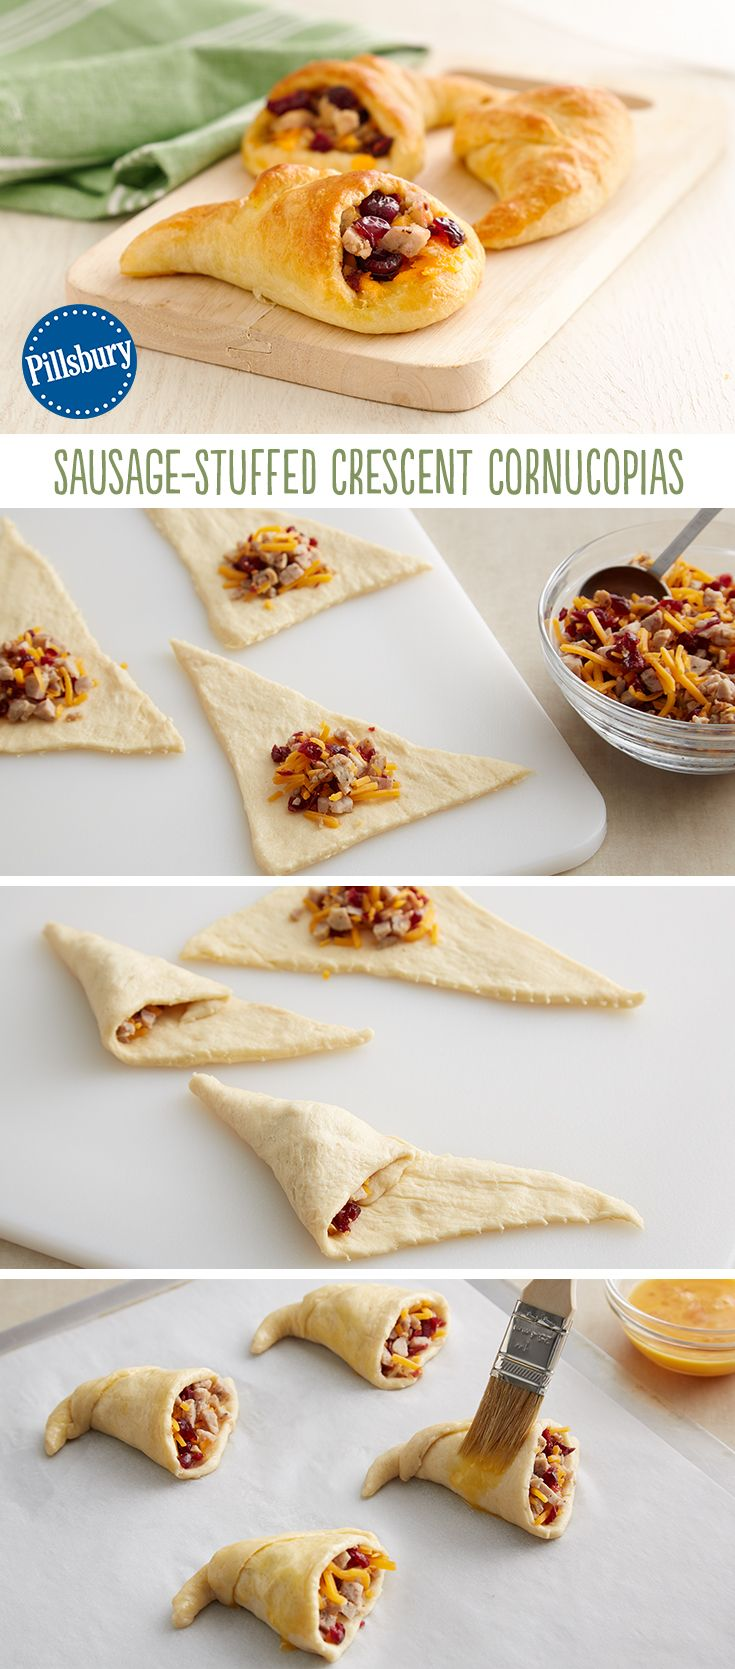 Using Pillsbury crescent rolls, you can make these awesome tasty Sausage-Stuffed Crescent Cornucopias! They can be served as pre-turkey appetizers or as a bread on the side for Thanksgiving.